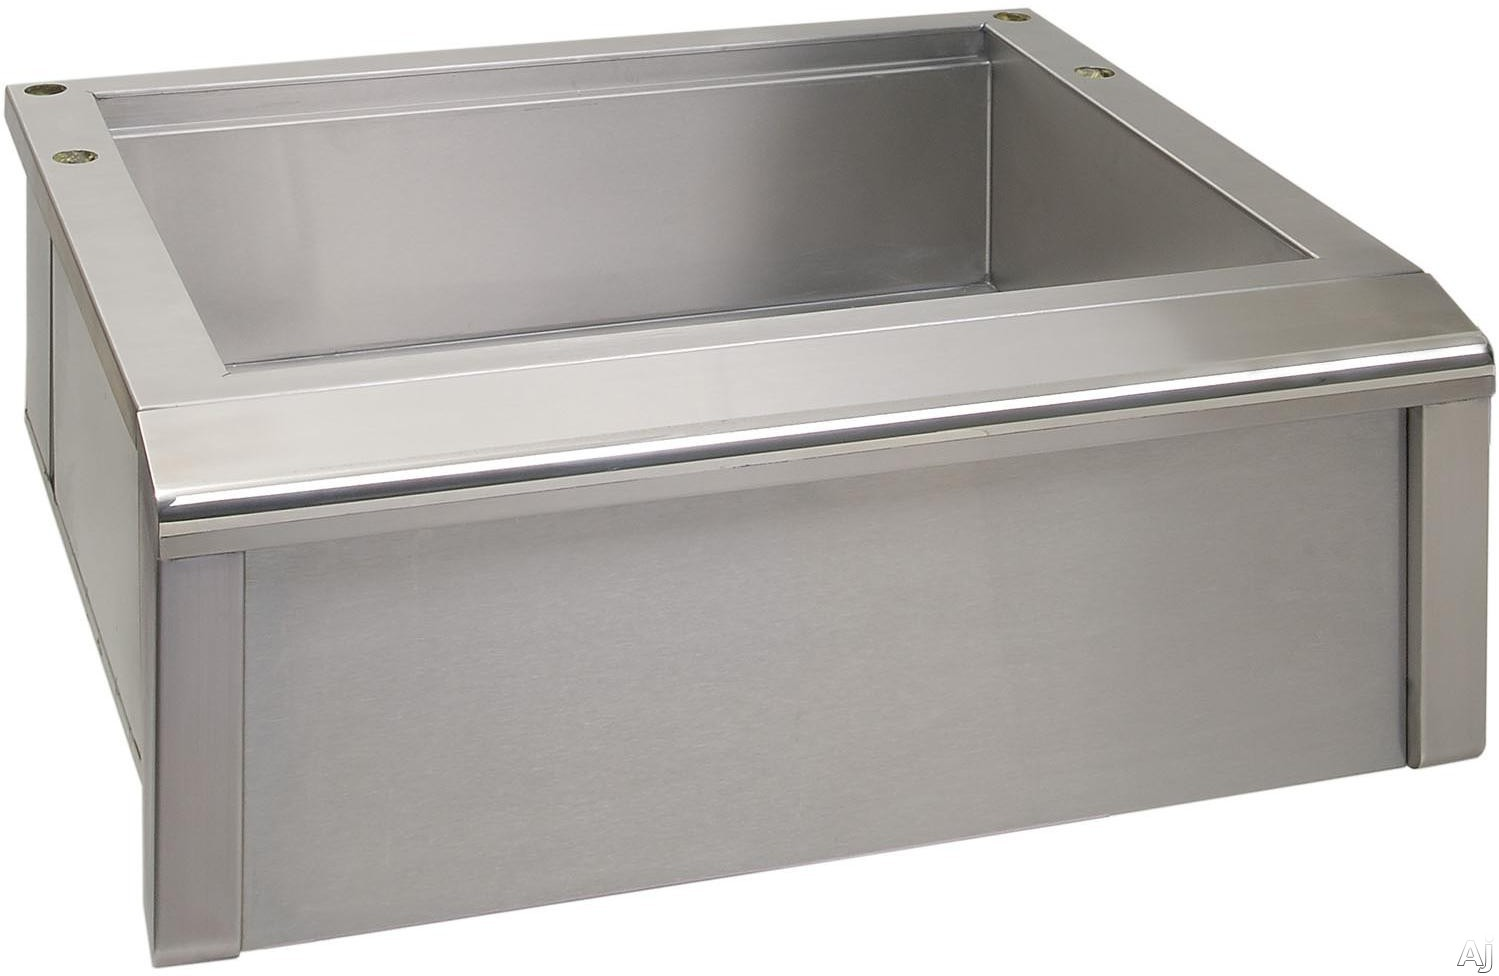 Alfresco AGBC30 30 Inch Stainless Steel Main Sink System with Cutting Board Drain and Optional Accessory Modules